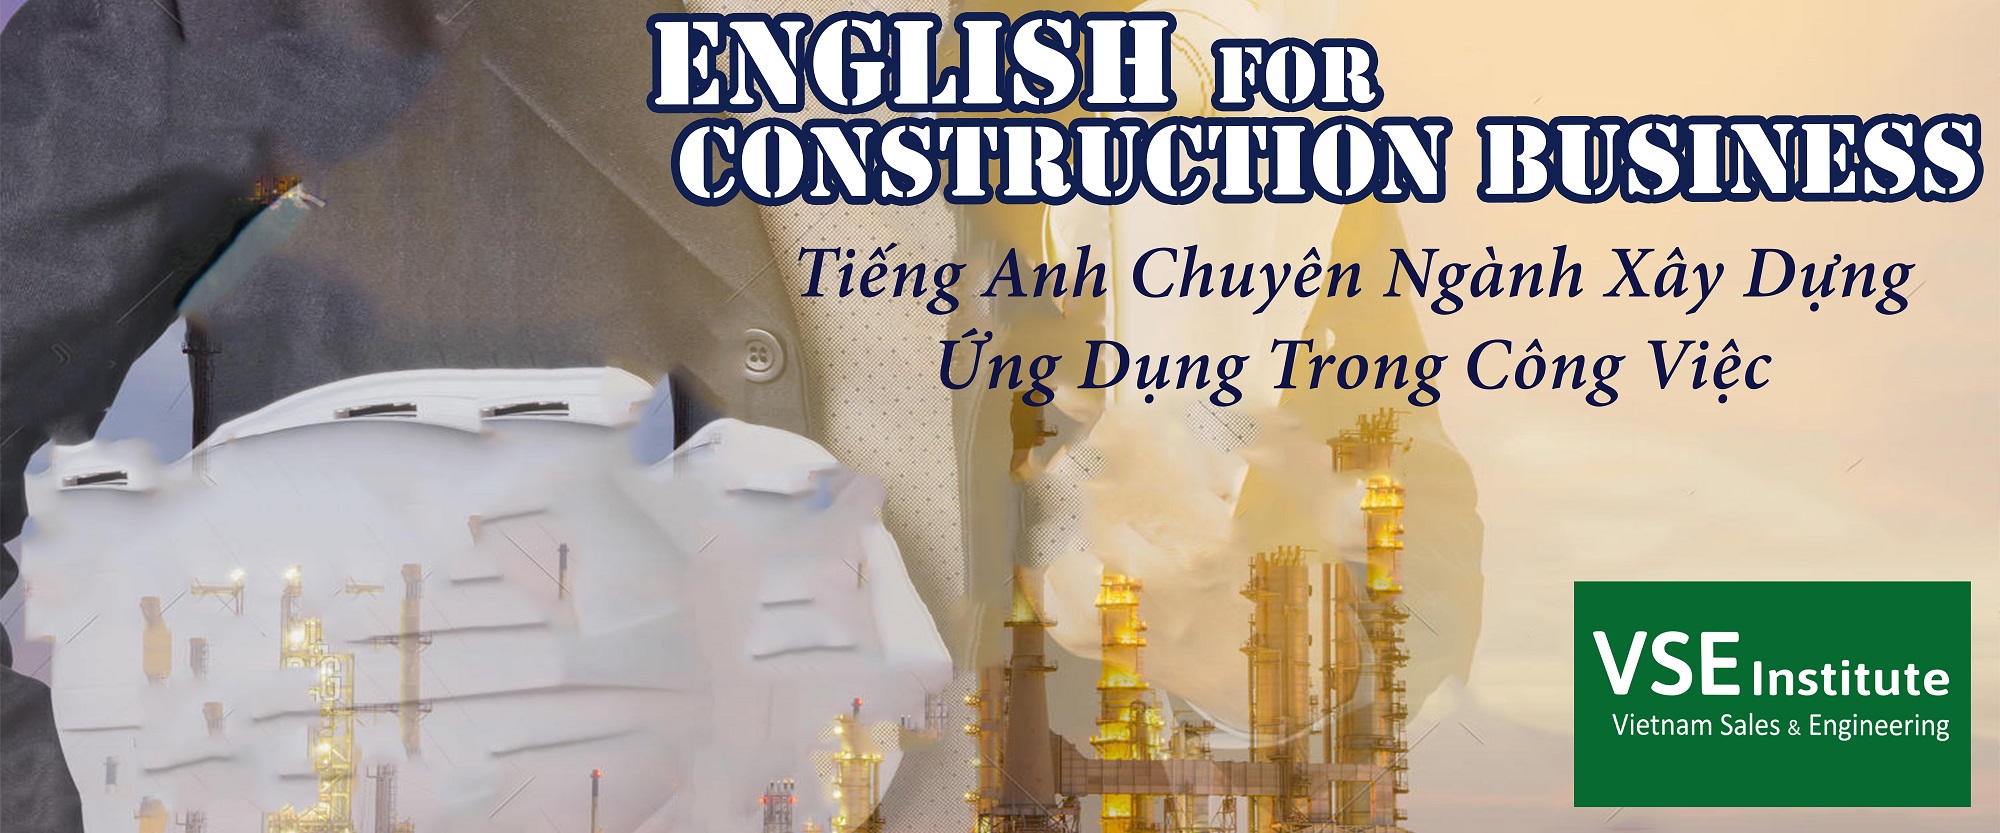 ENGLISH FOR CONSTRUCTION BUSINESS _ 0421